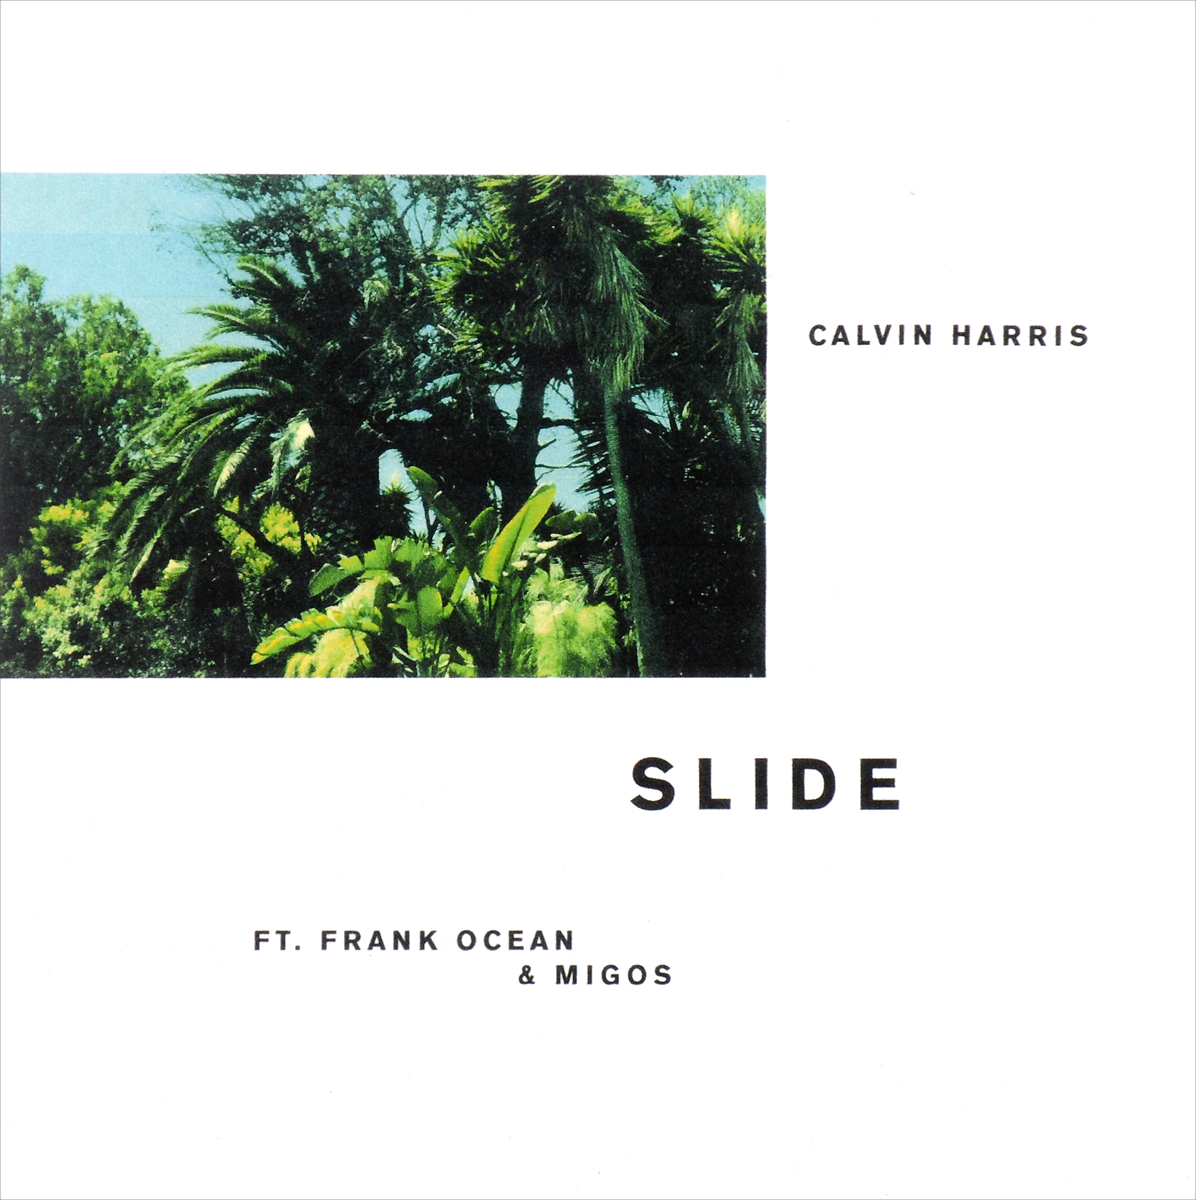 Кельвин Харрис,Frank Ocean,Migos Calvin Harris Ft. Frank Ocean & Migos. Slide (LP) roxy music roxy music the studio albums limited edition 8 lp